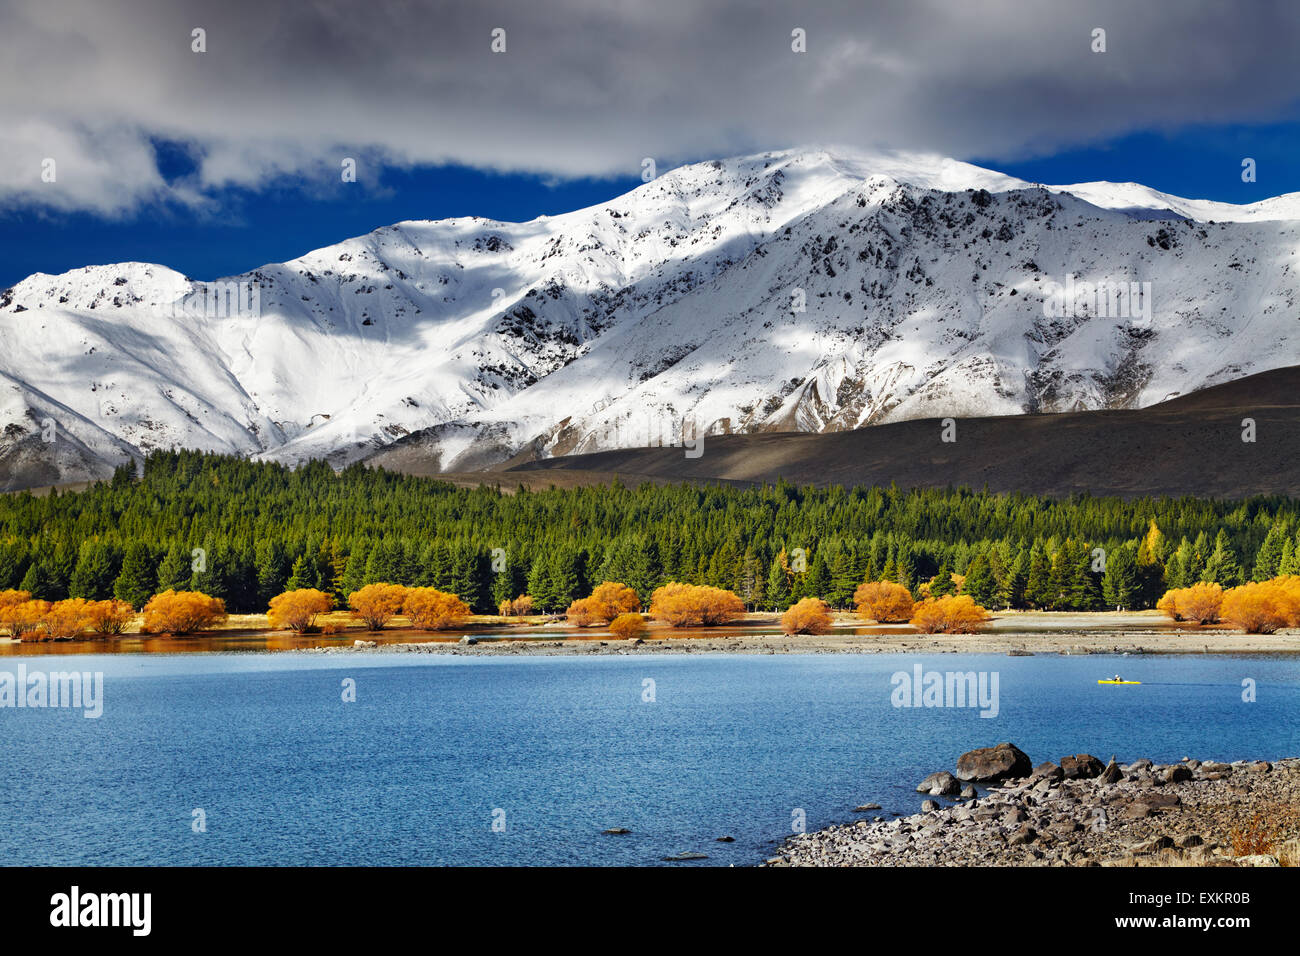 Mountain landscape, Lake Tekapo, New Zealand - Stock Image